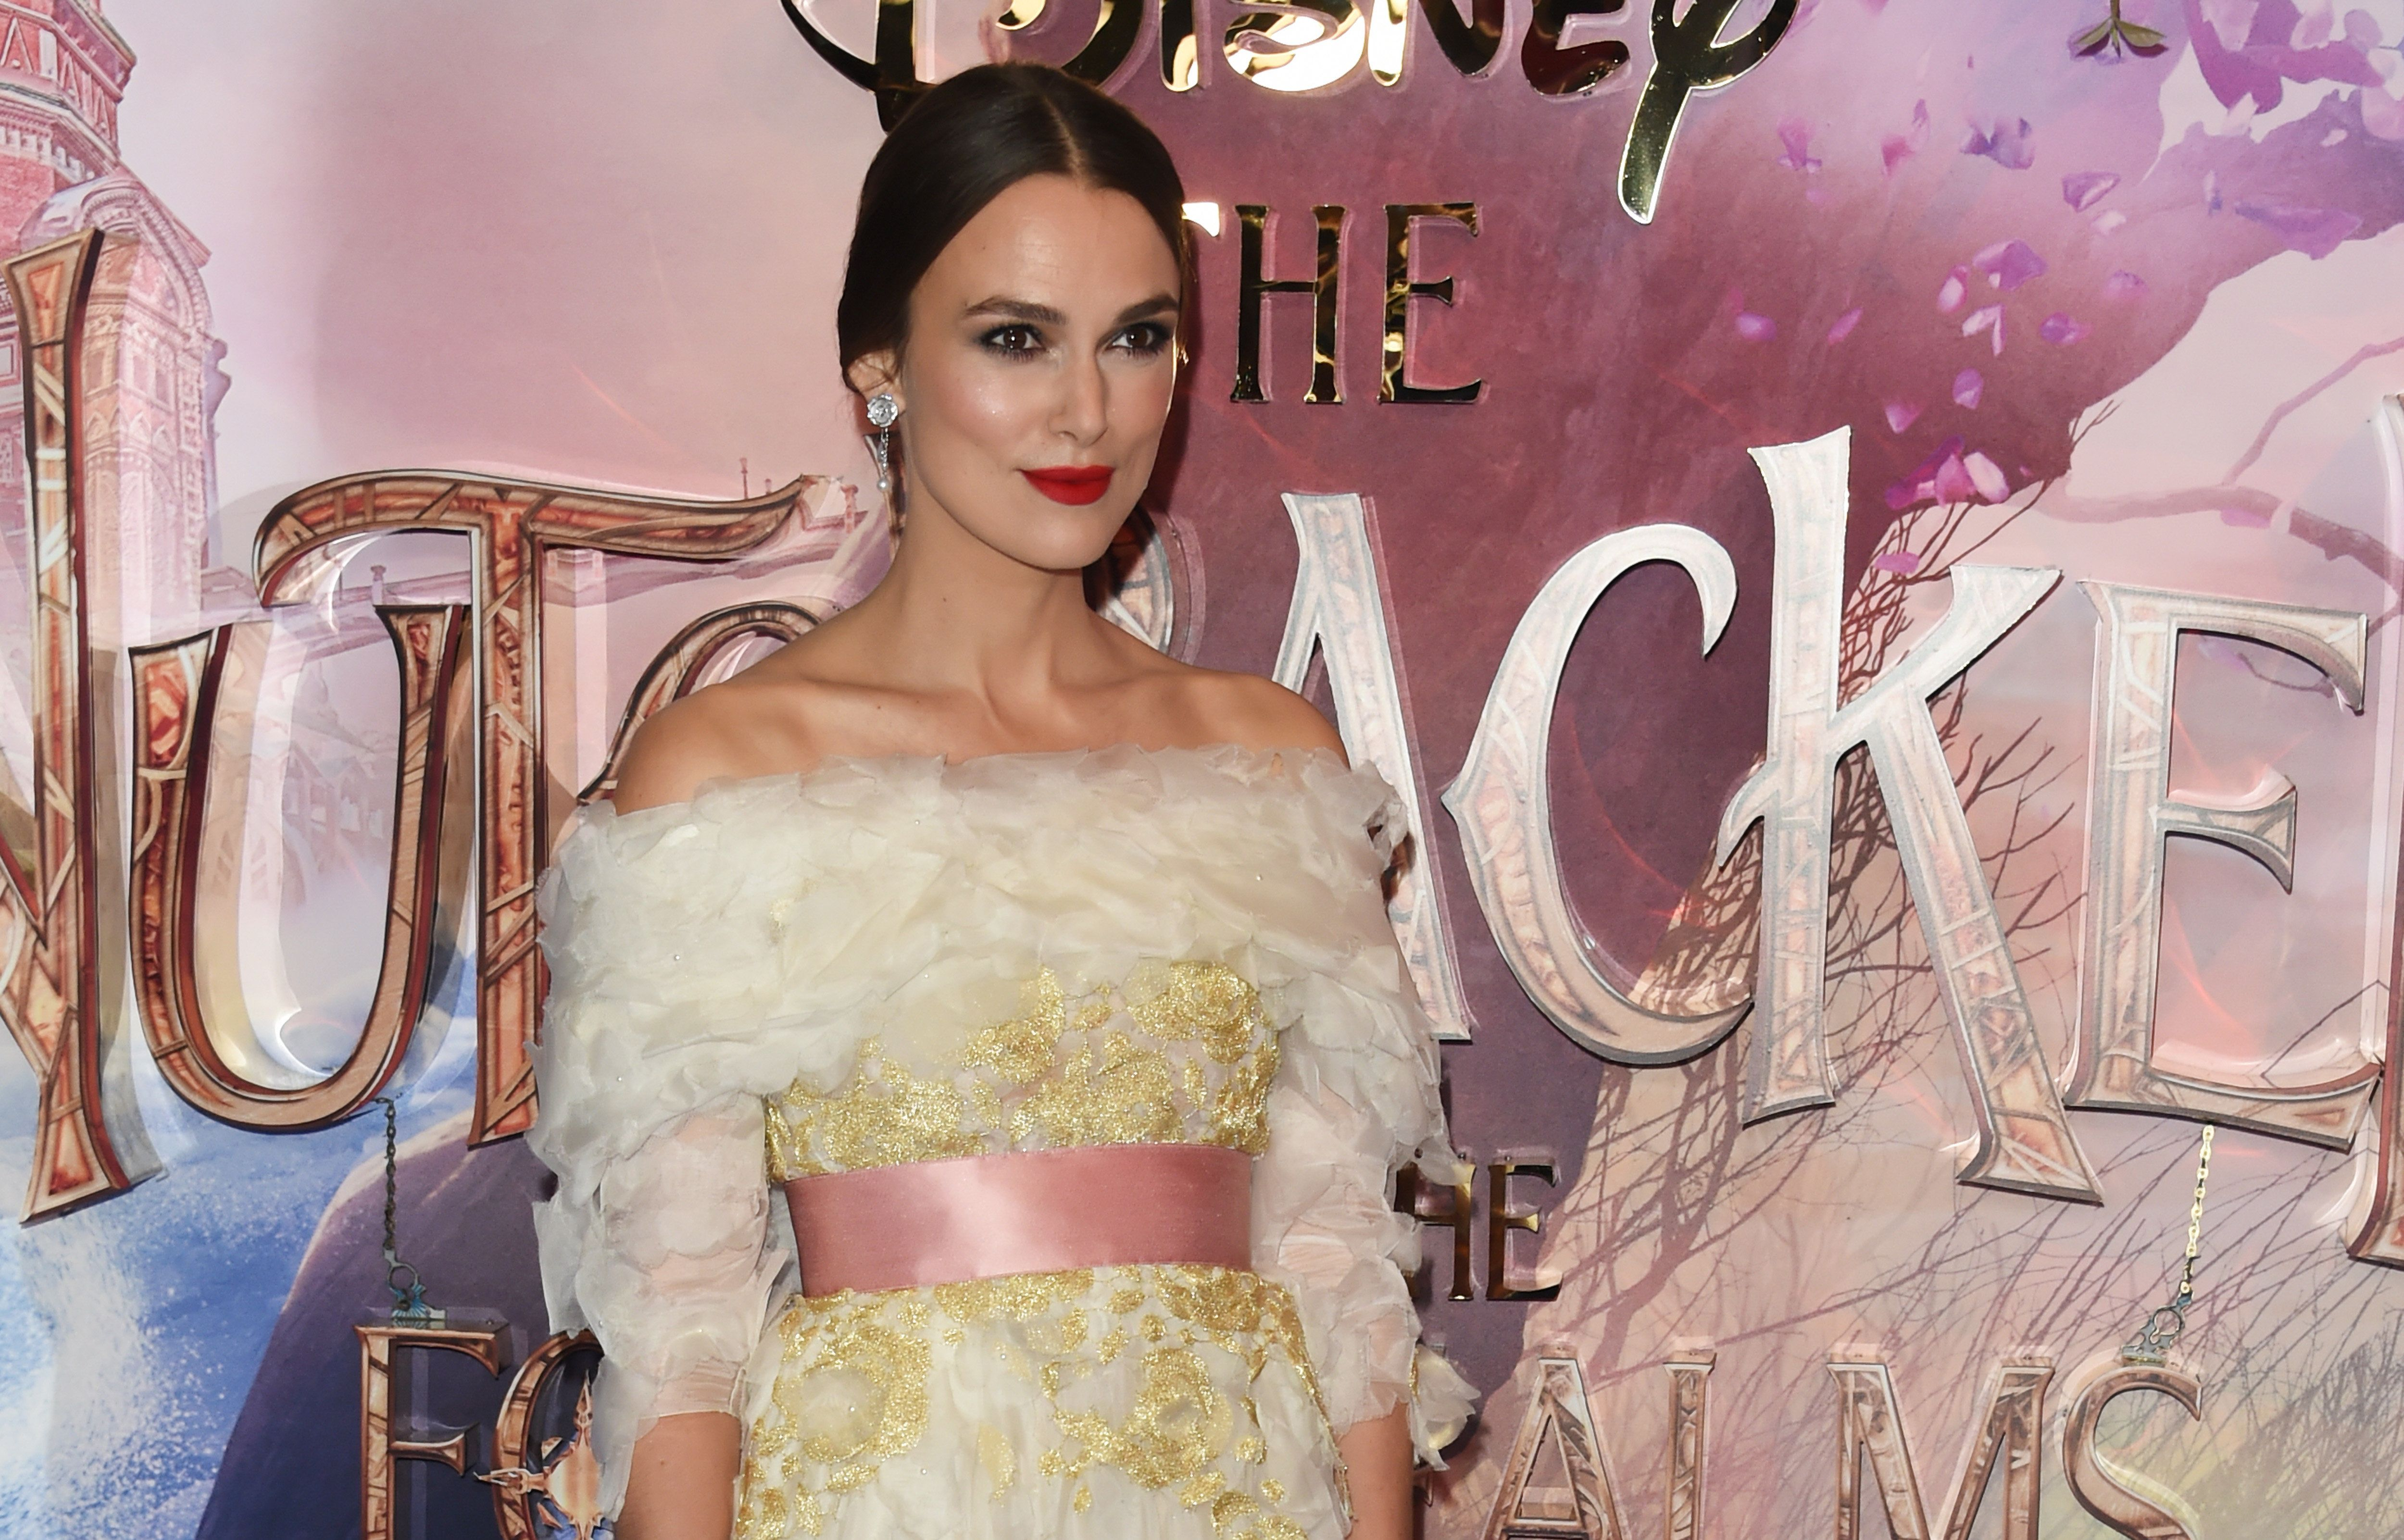 LONDON, ENGLAND - NOVEMBER 01:   Keira Knightley attends the European Premiere of Disney's 'The Nutcracker And The Four Realms' at Vue Westfield on November 1, 2018 in London, England.  (Photo by David M. Benett/Dave Benett/WireImage)